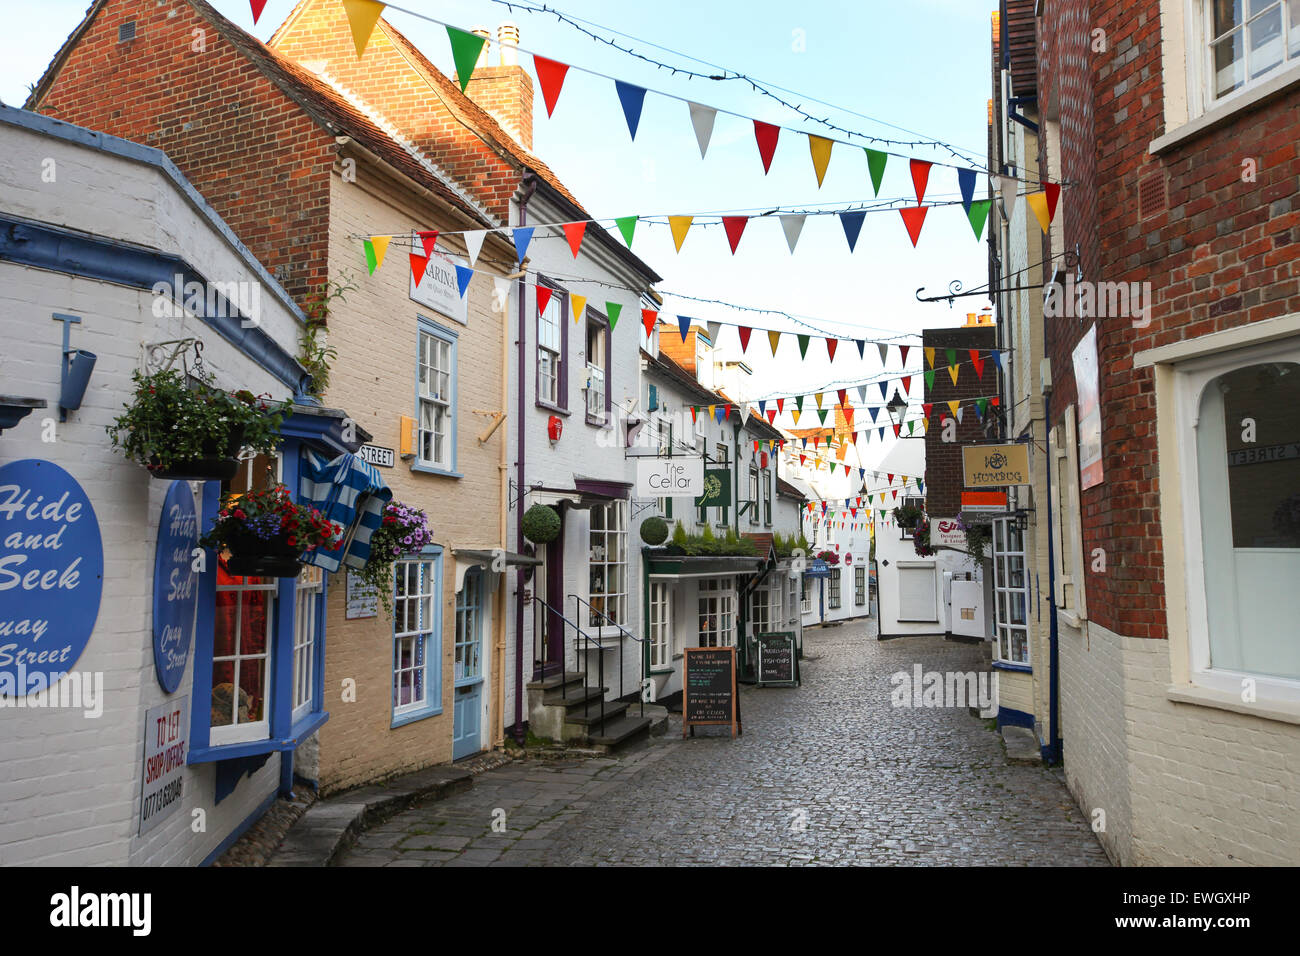 Quay Hill and Quay Street in Lymington Hampshire on the edge of the New Forest - Stock Image